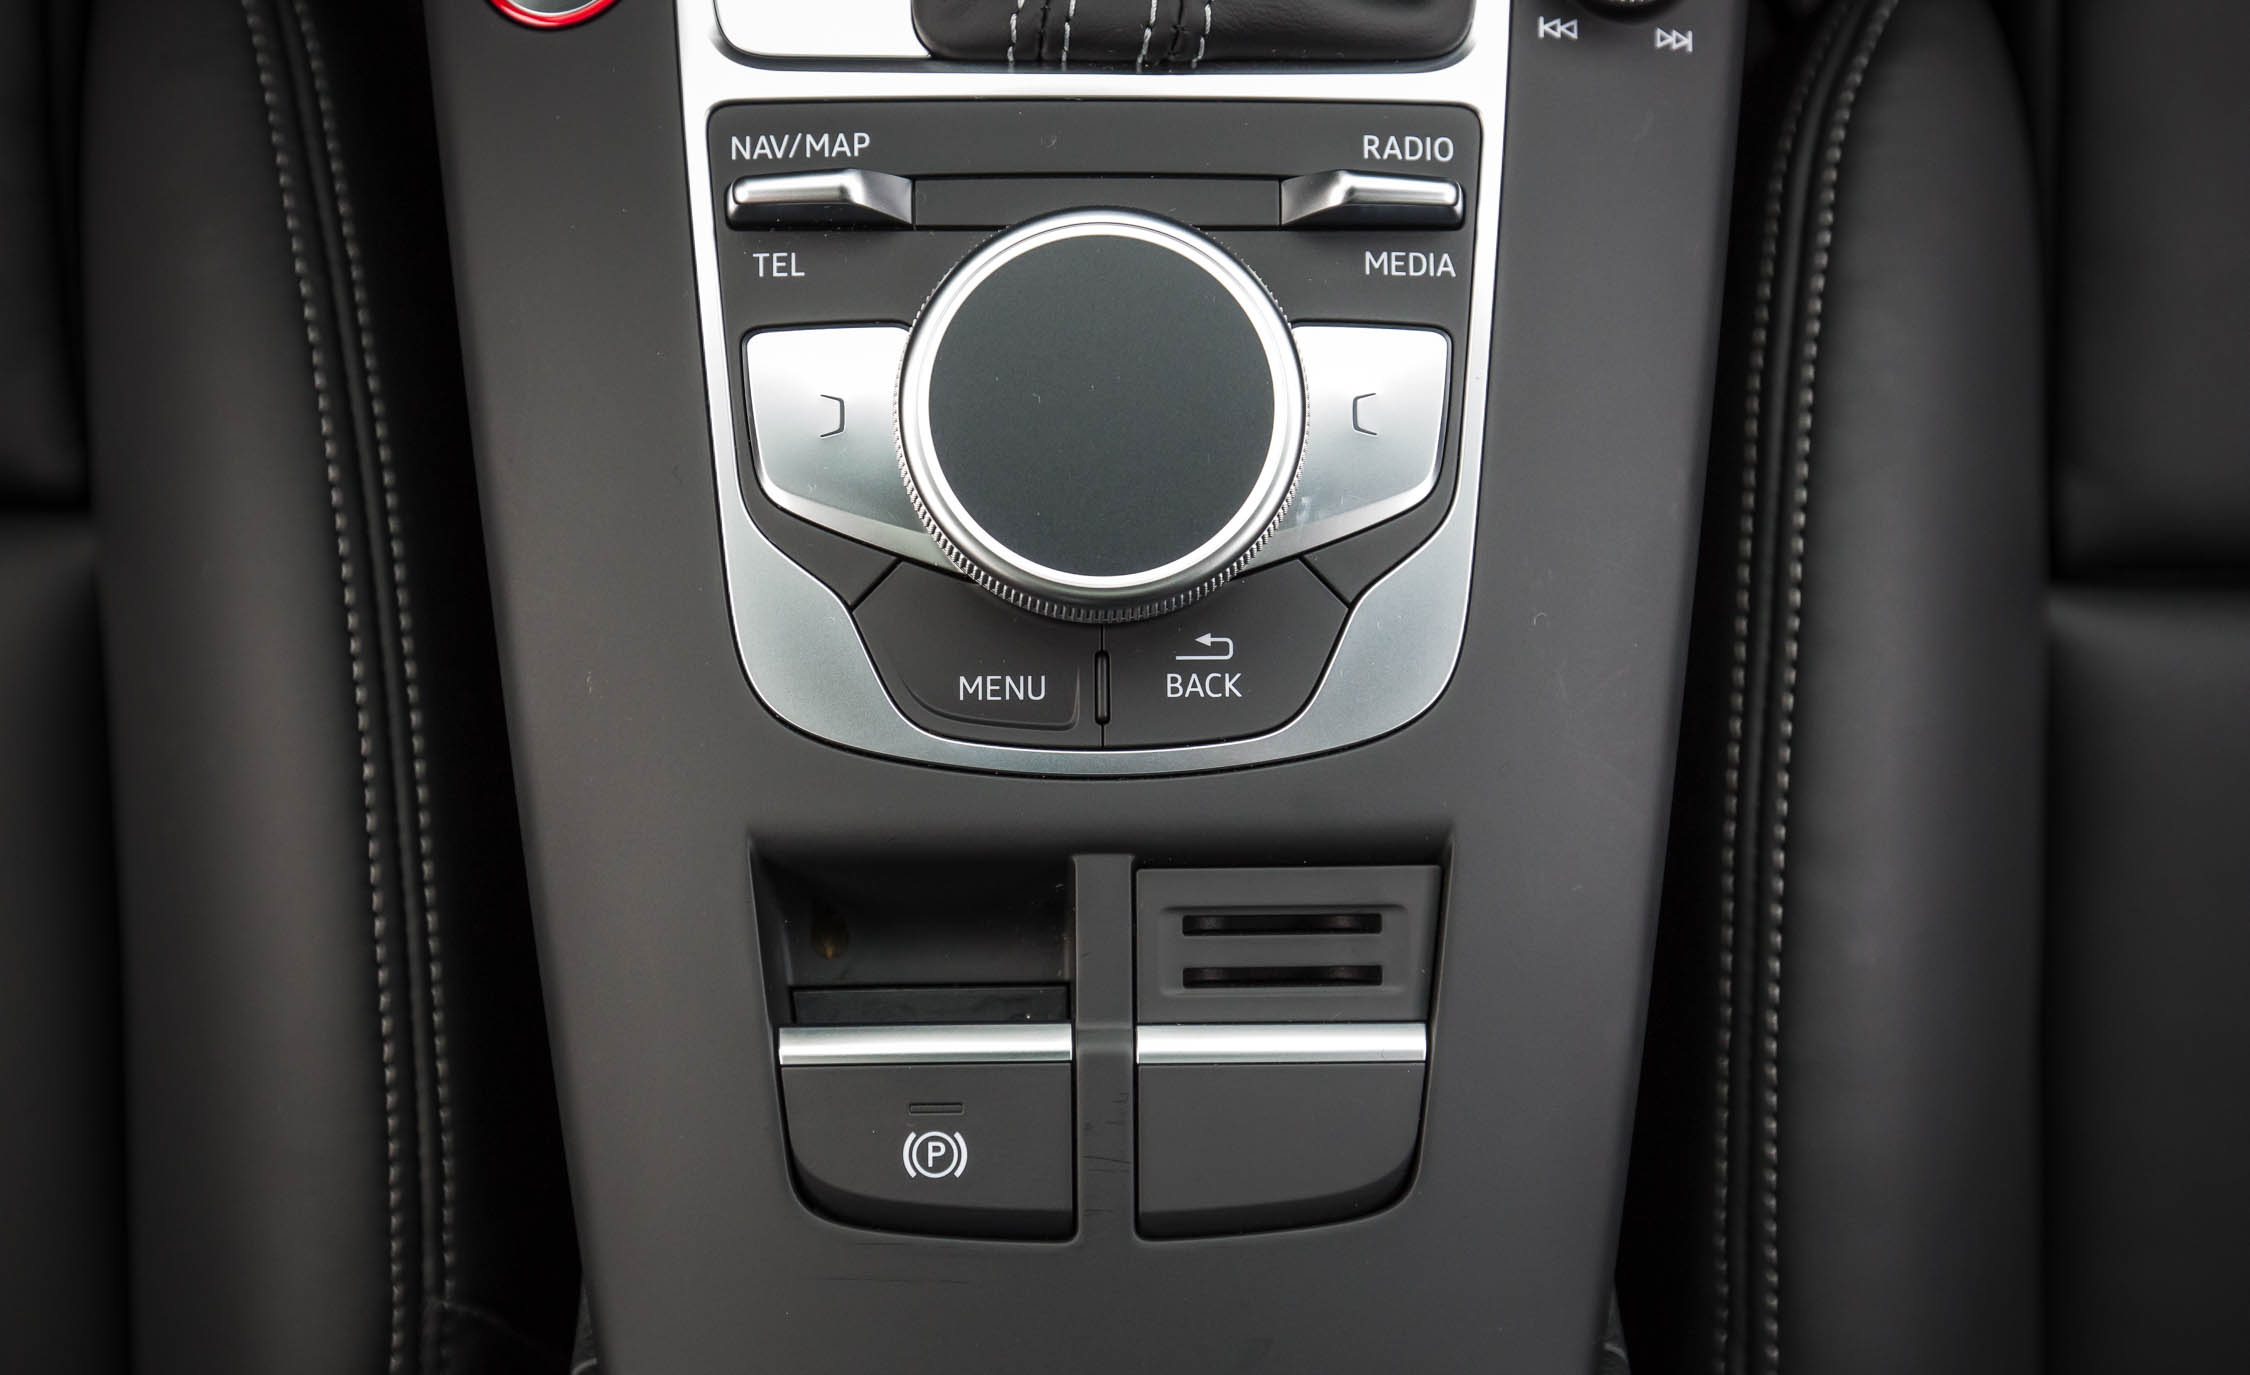 2017 Audi S3 Interior View Center Console Control (Photo 23 of 50)